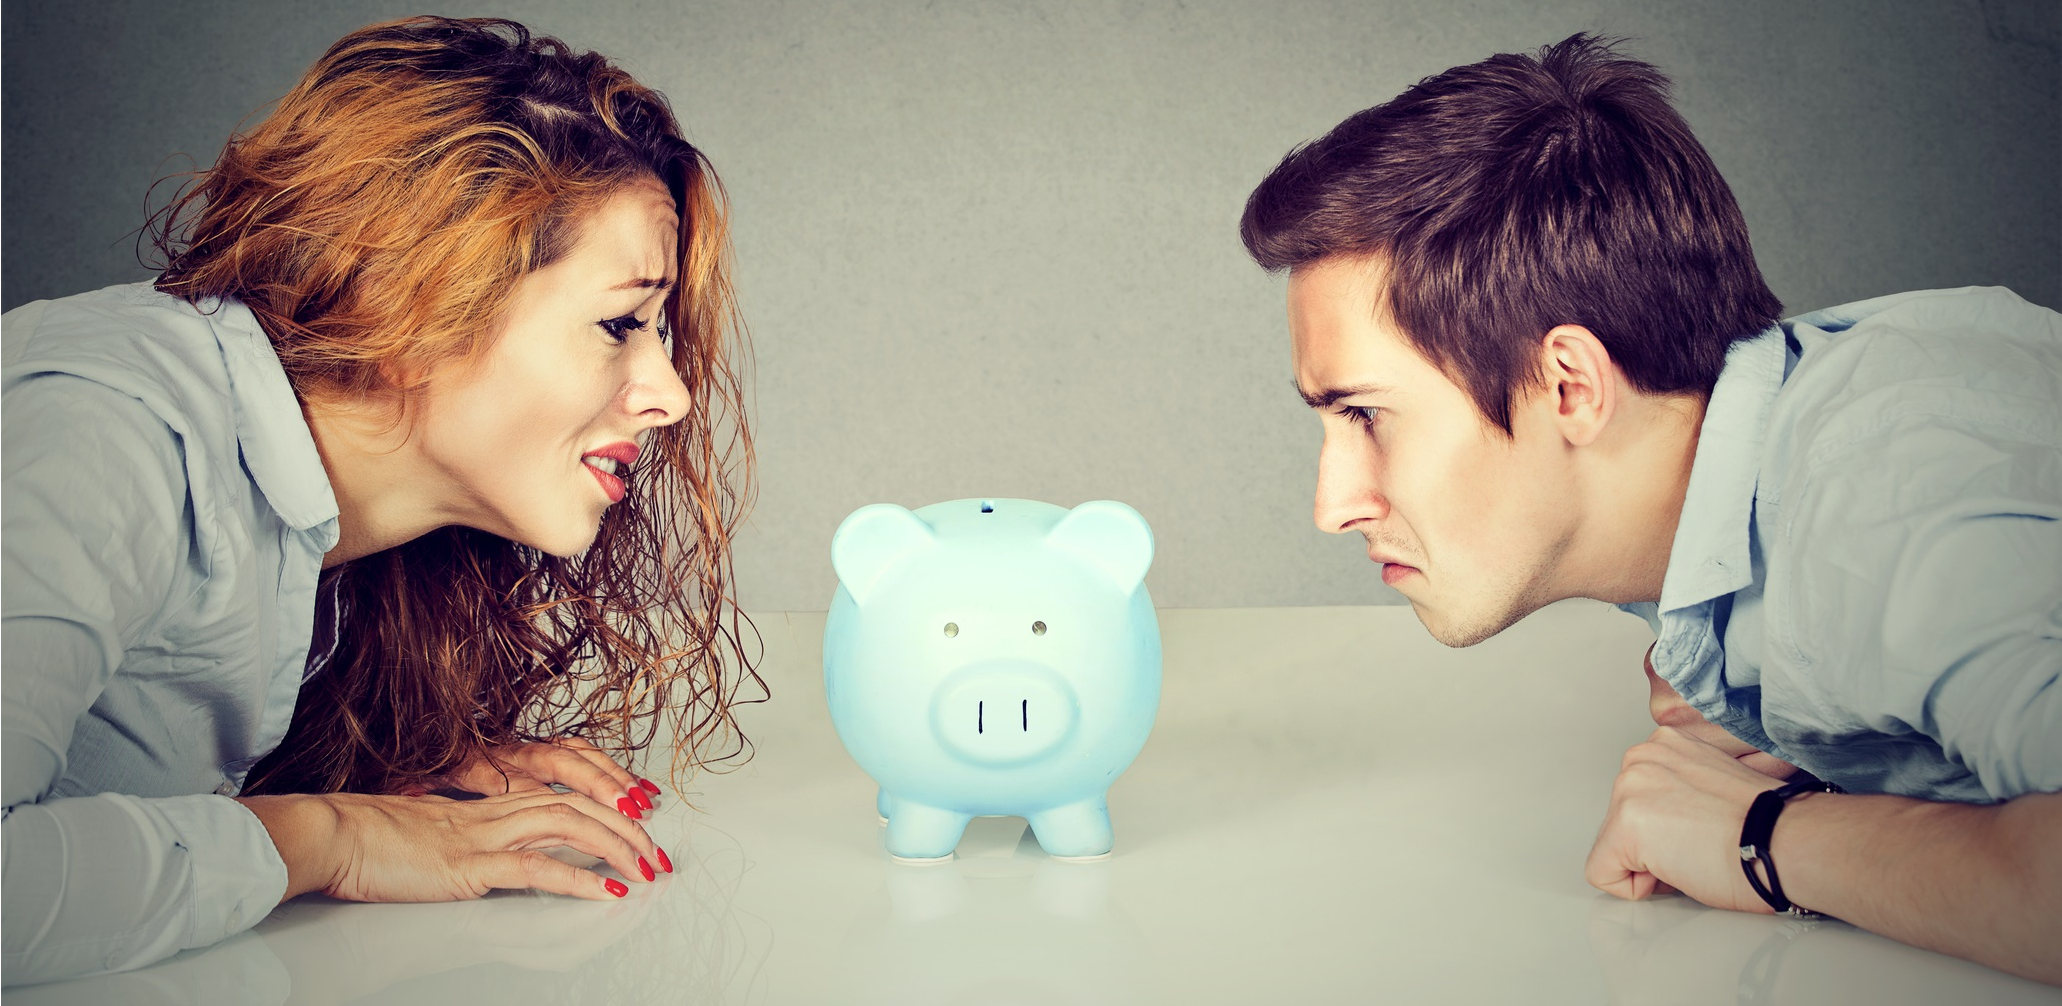 Divorcing couple sorting out their finances